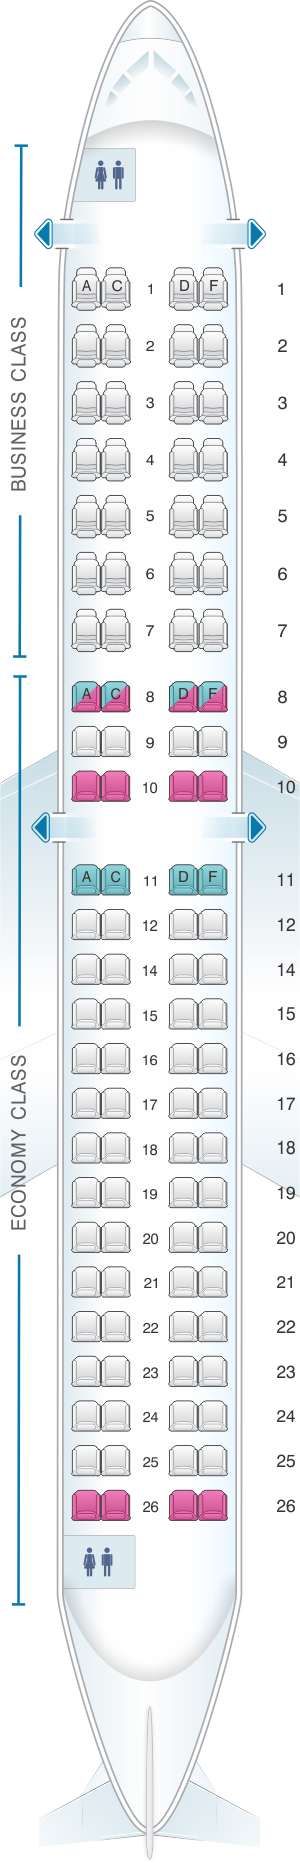 Seat map for HOP! Embraer 190